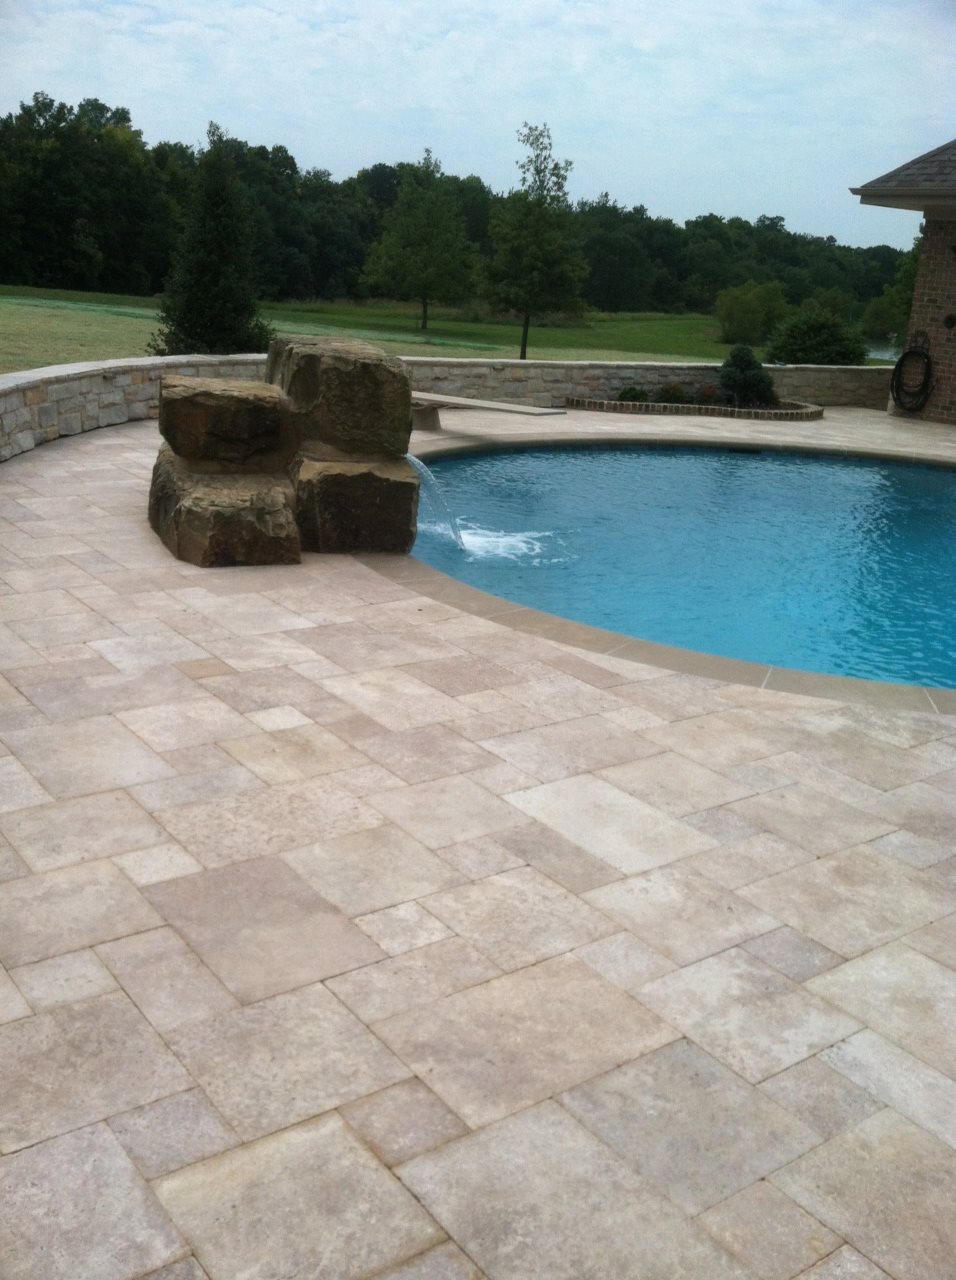 Travertine Pool Pavers Pool Decks Pool Design Swimming Pool Builder Dayton Oh  Pool